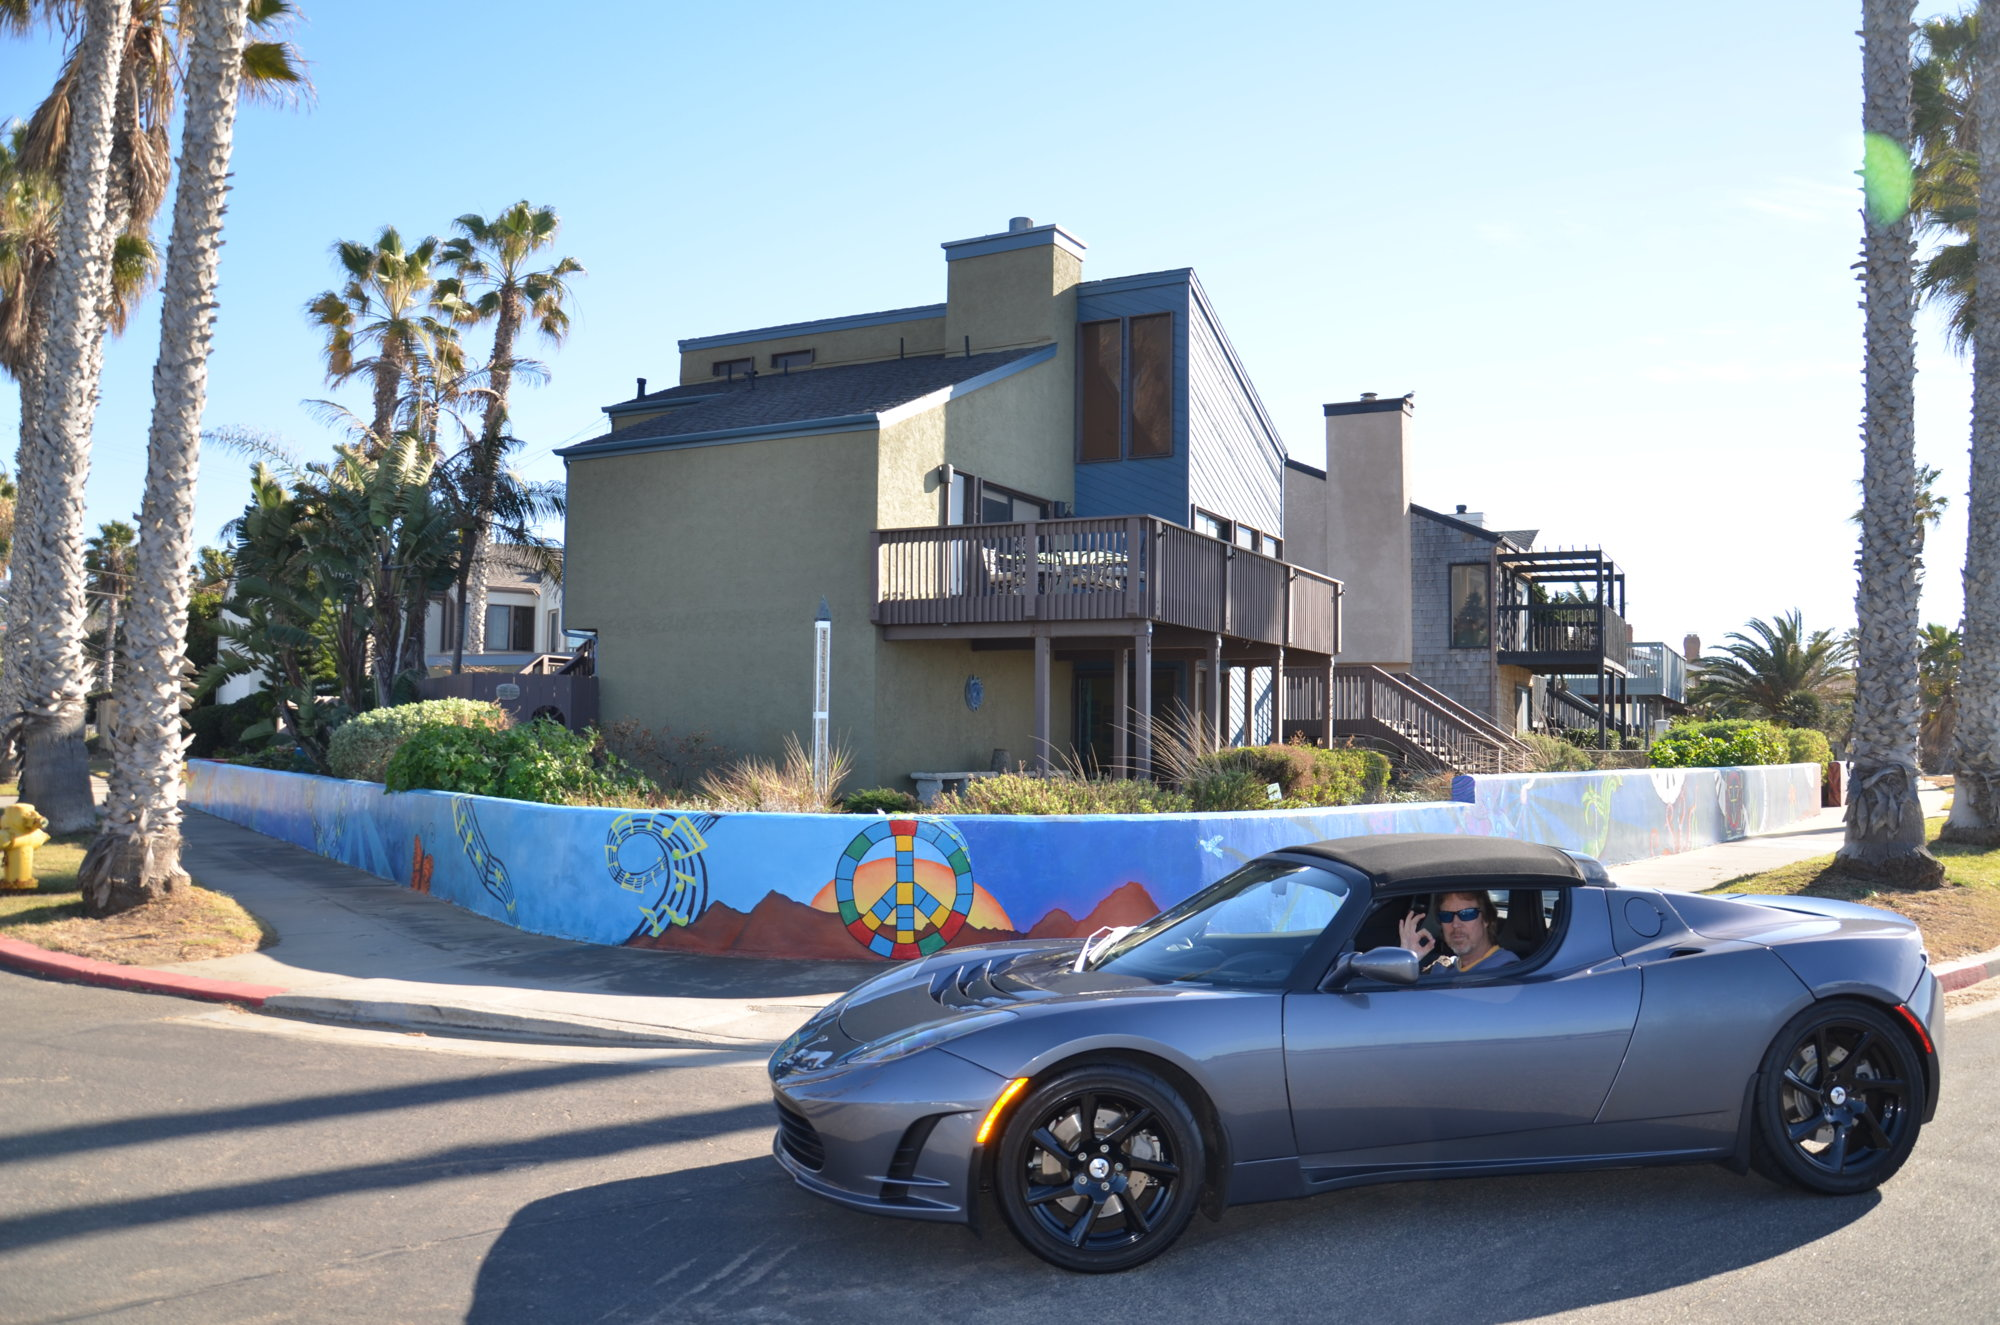 2015-12-18-Tesla-Roadster-on-Sunset-Cliffs-028.JPG